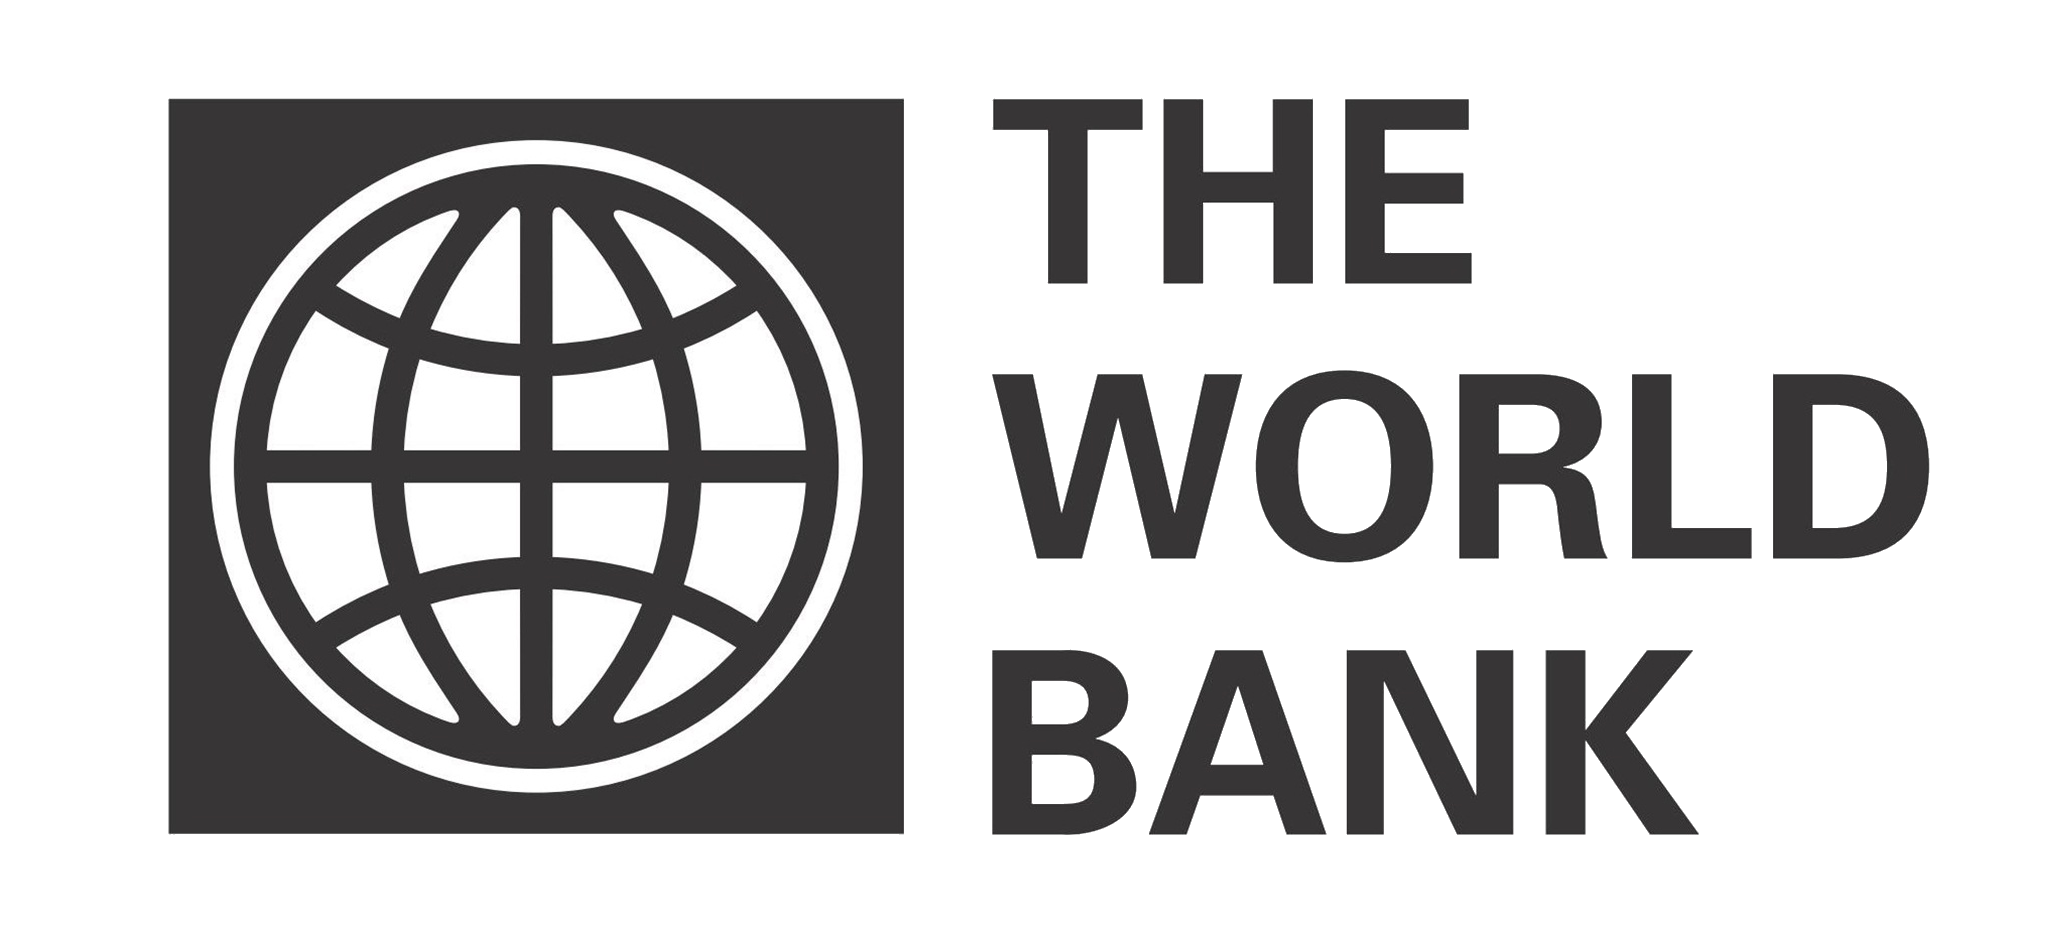 The-World-Bank-Fund